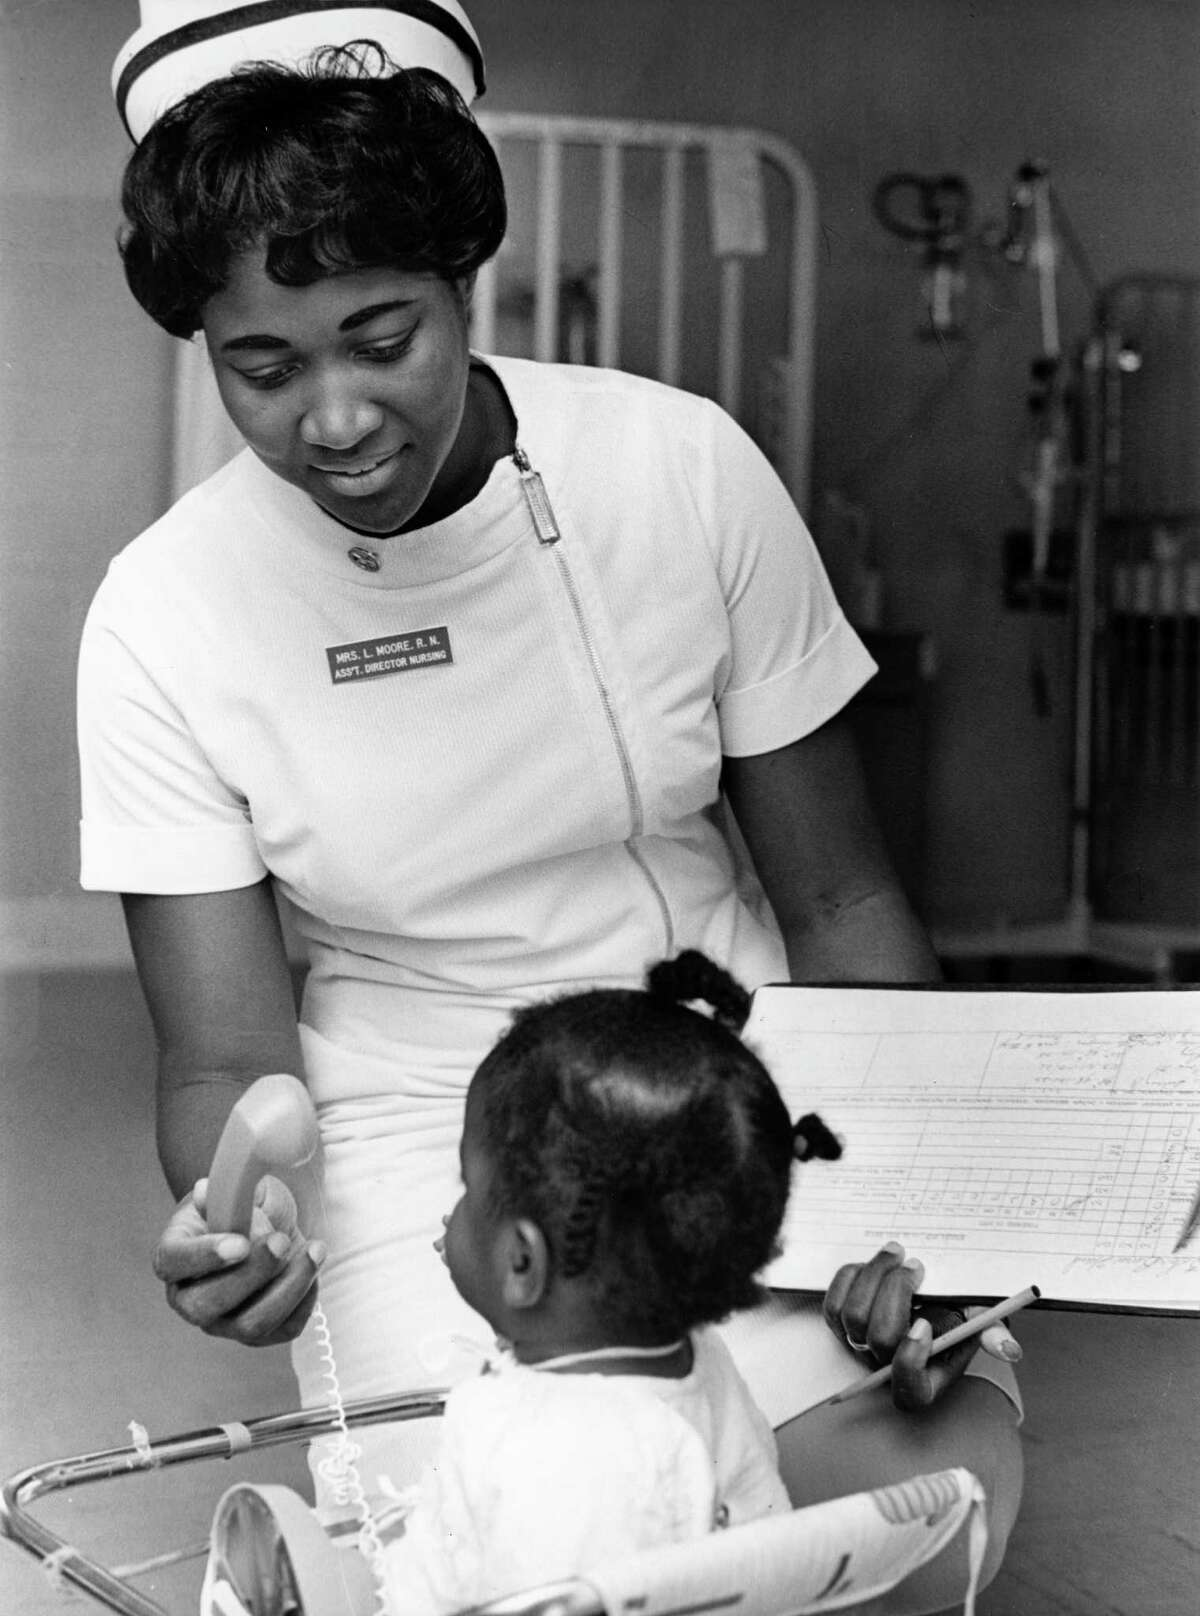 12/1968 - Lois Moore, assistant director of Nursing at Ben Taub Hospital, often stops to see younger patients.